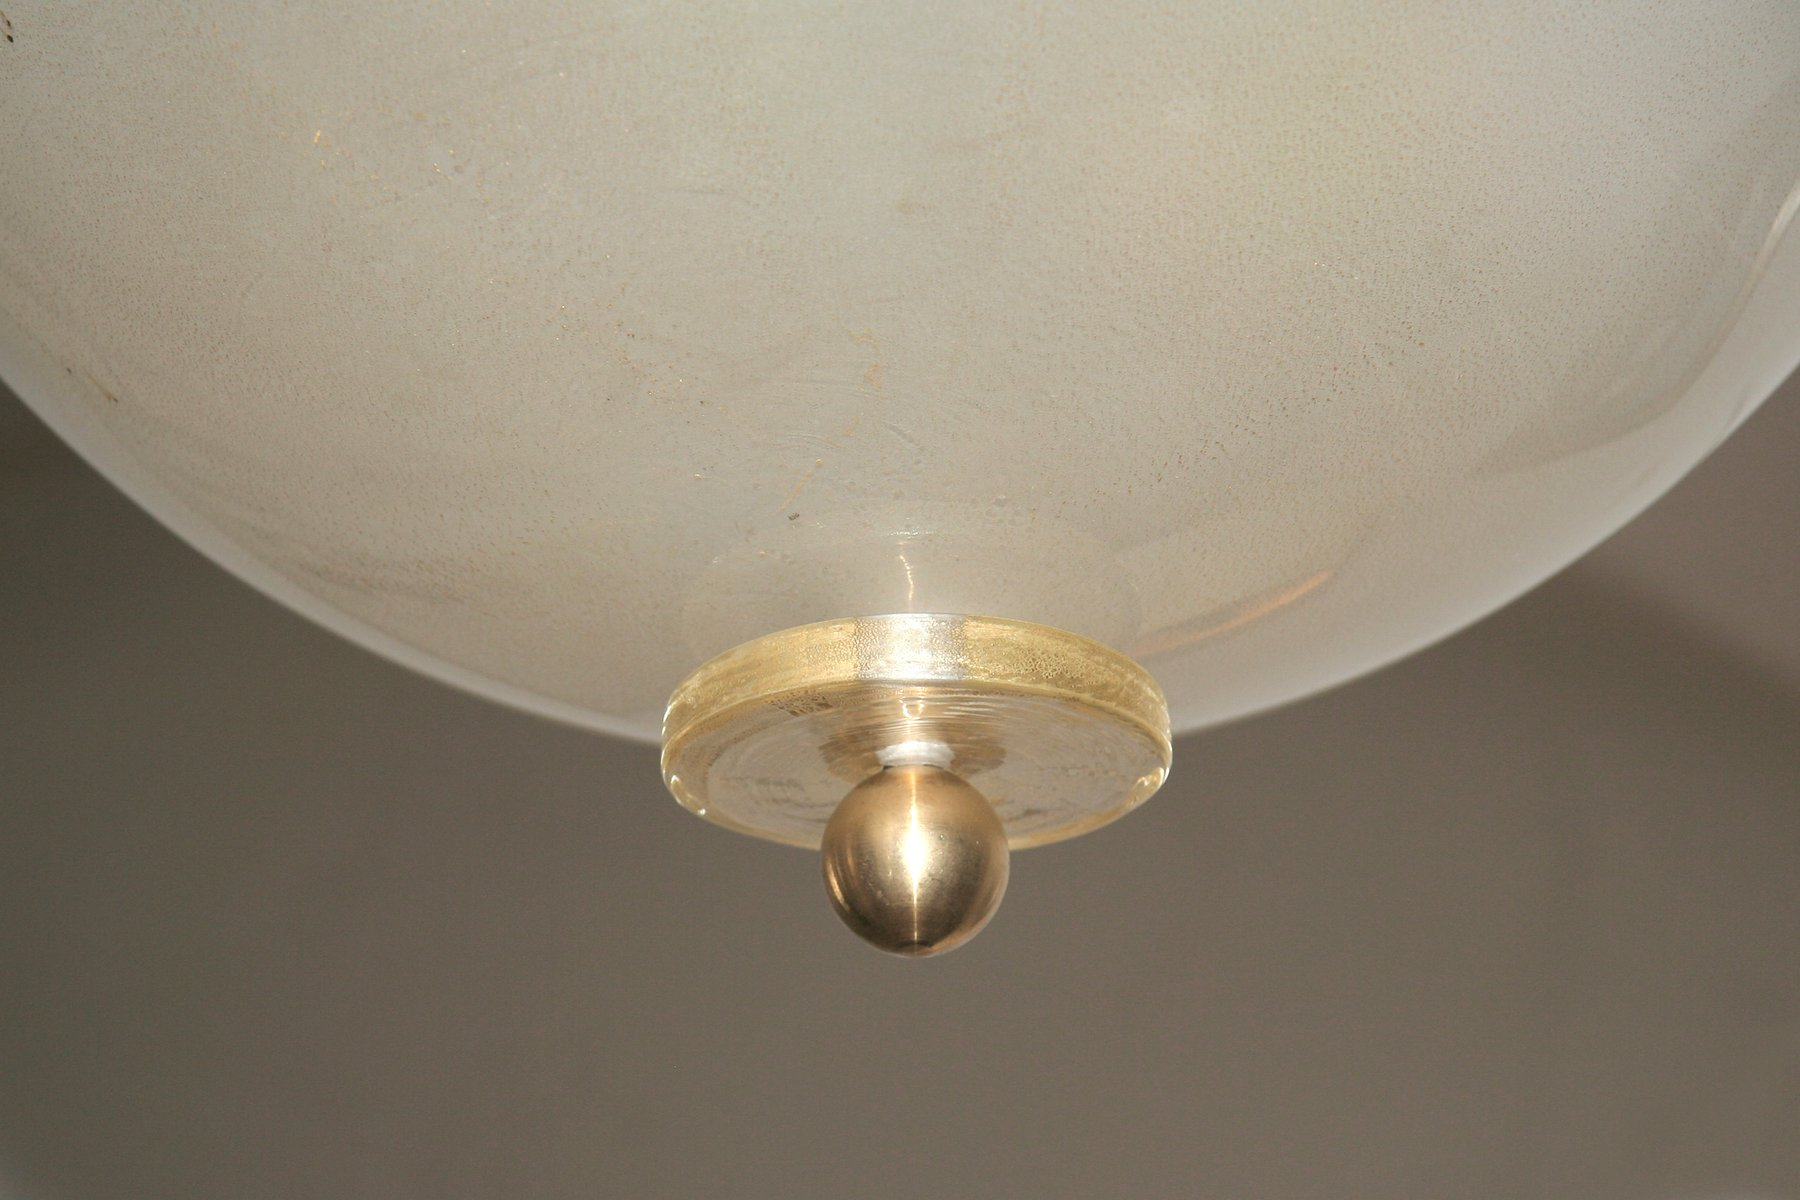 Italian Murano Glass Ceiling Light 1970s For Sale At Pamono